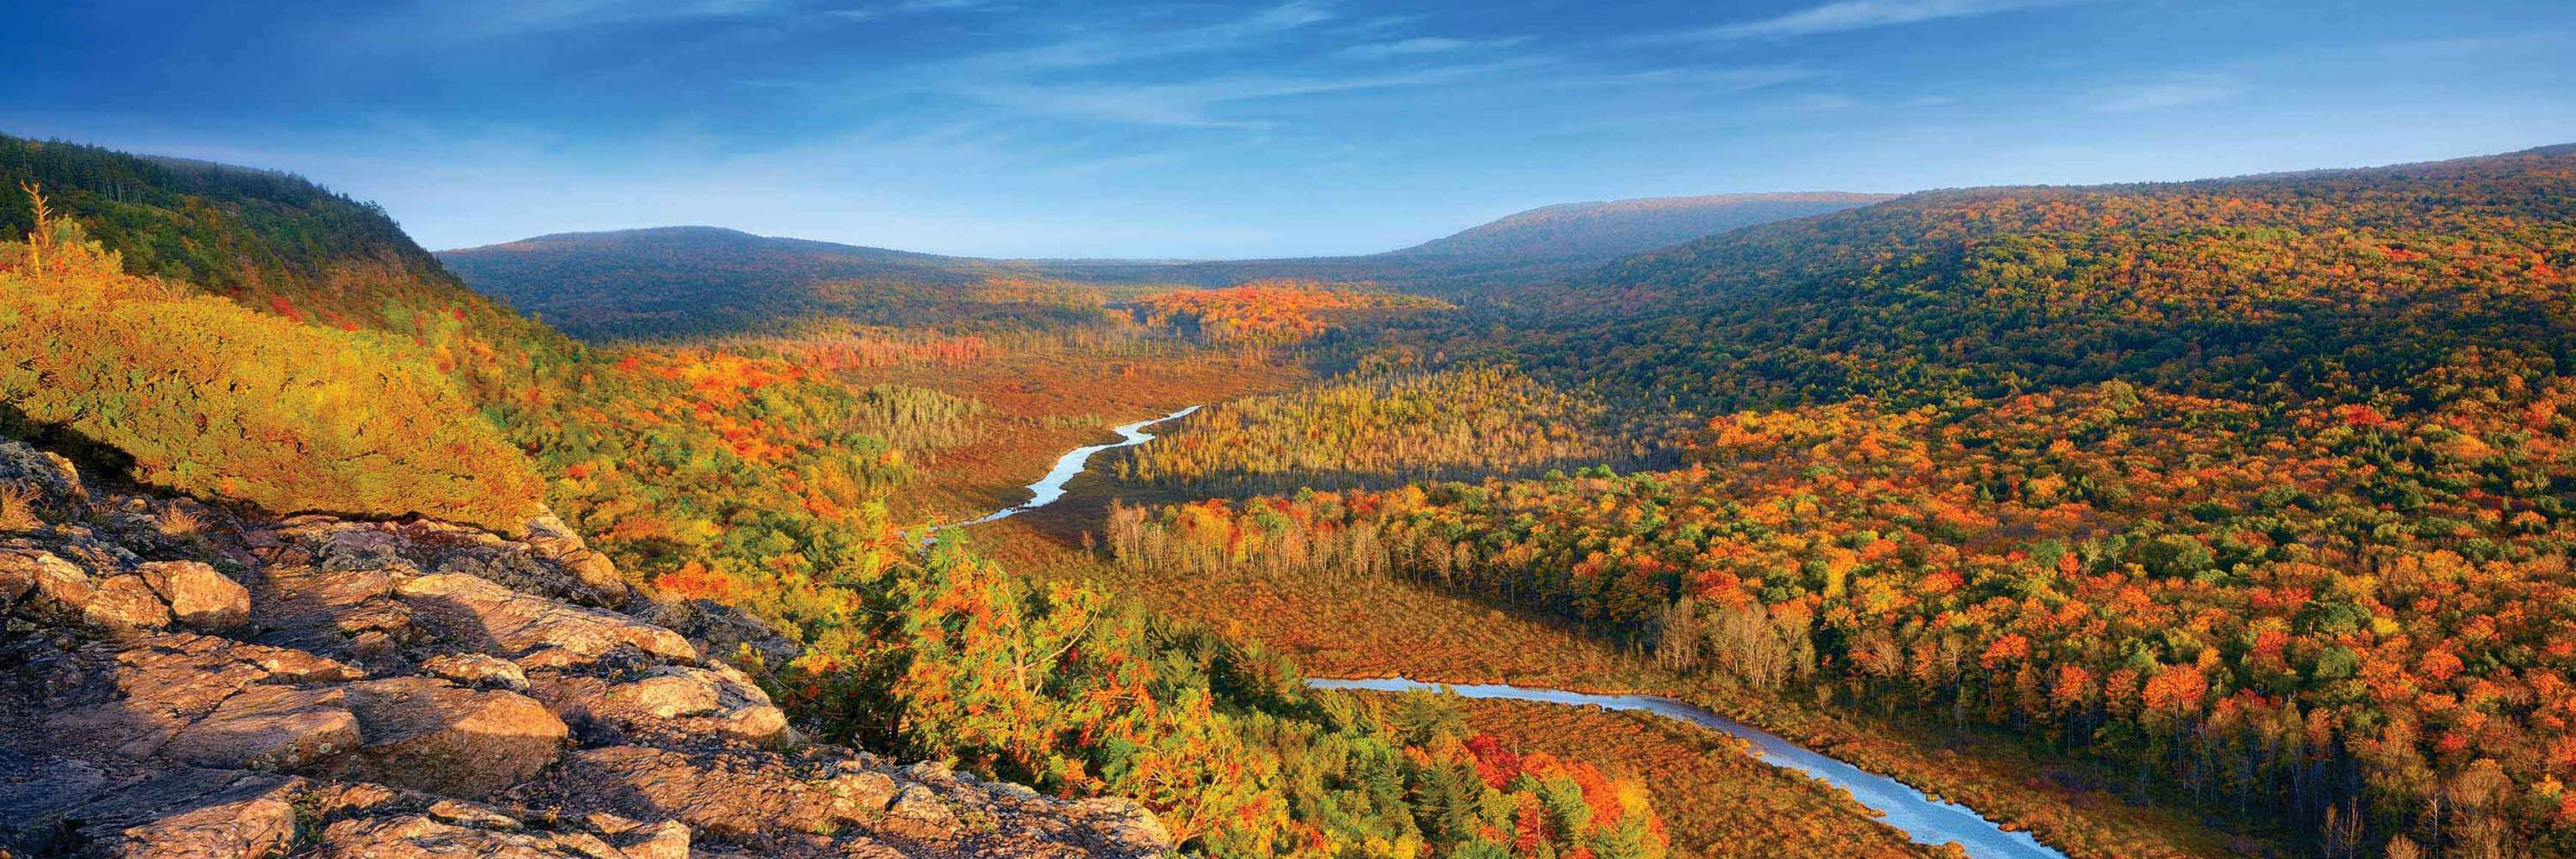 Fall: Take the Scenic Route | Michigan